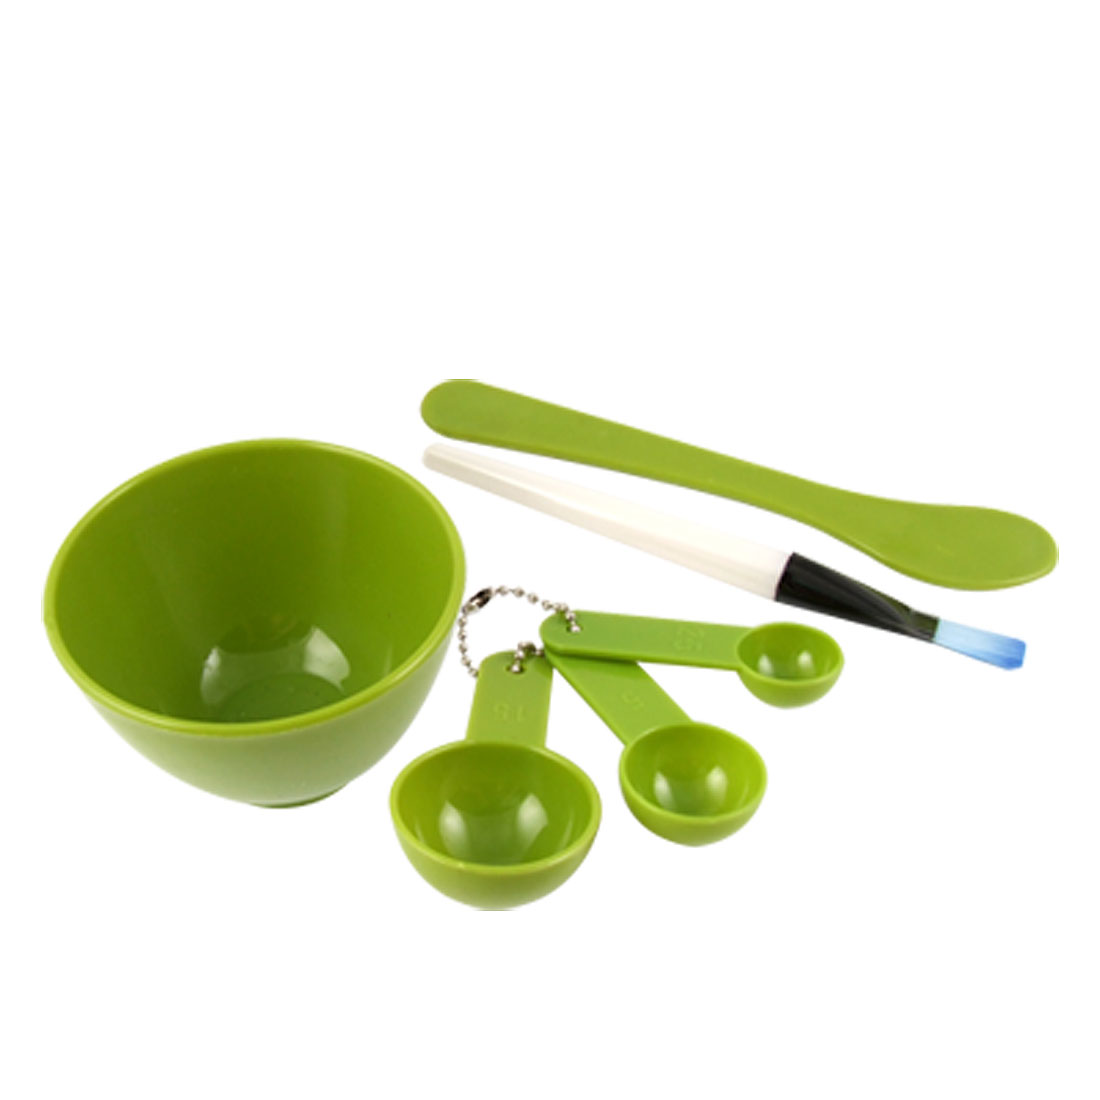 4 in 1 Green DIY Facial Face Mask Mixing Bowl Brush Gauge Stick Set